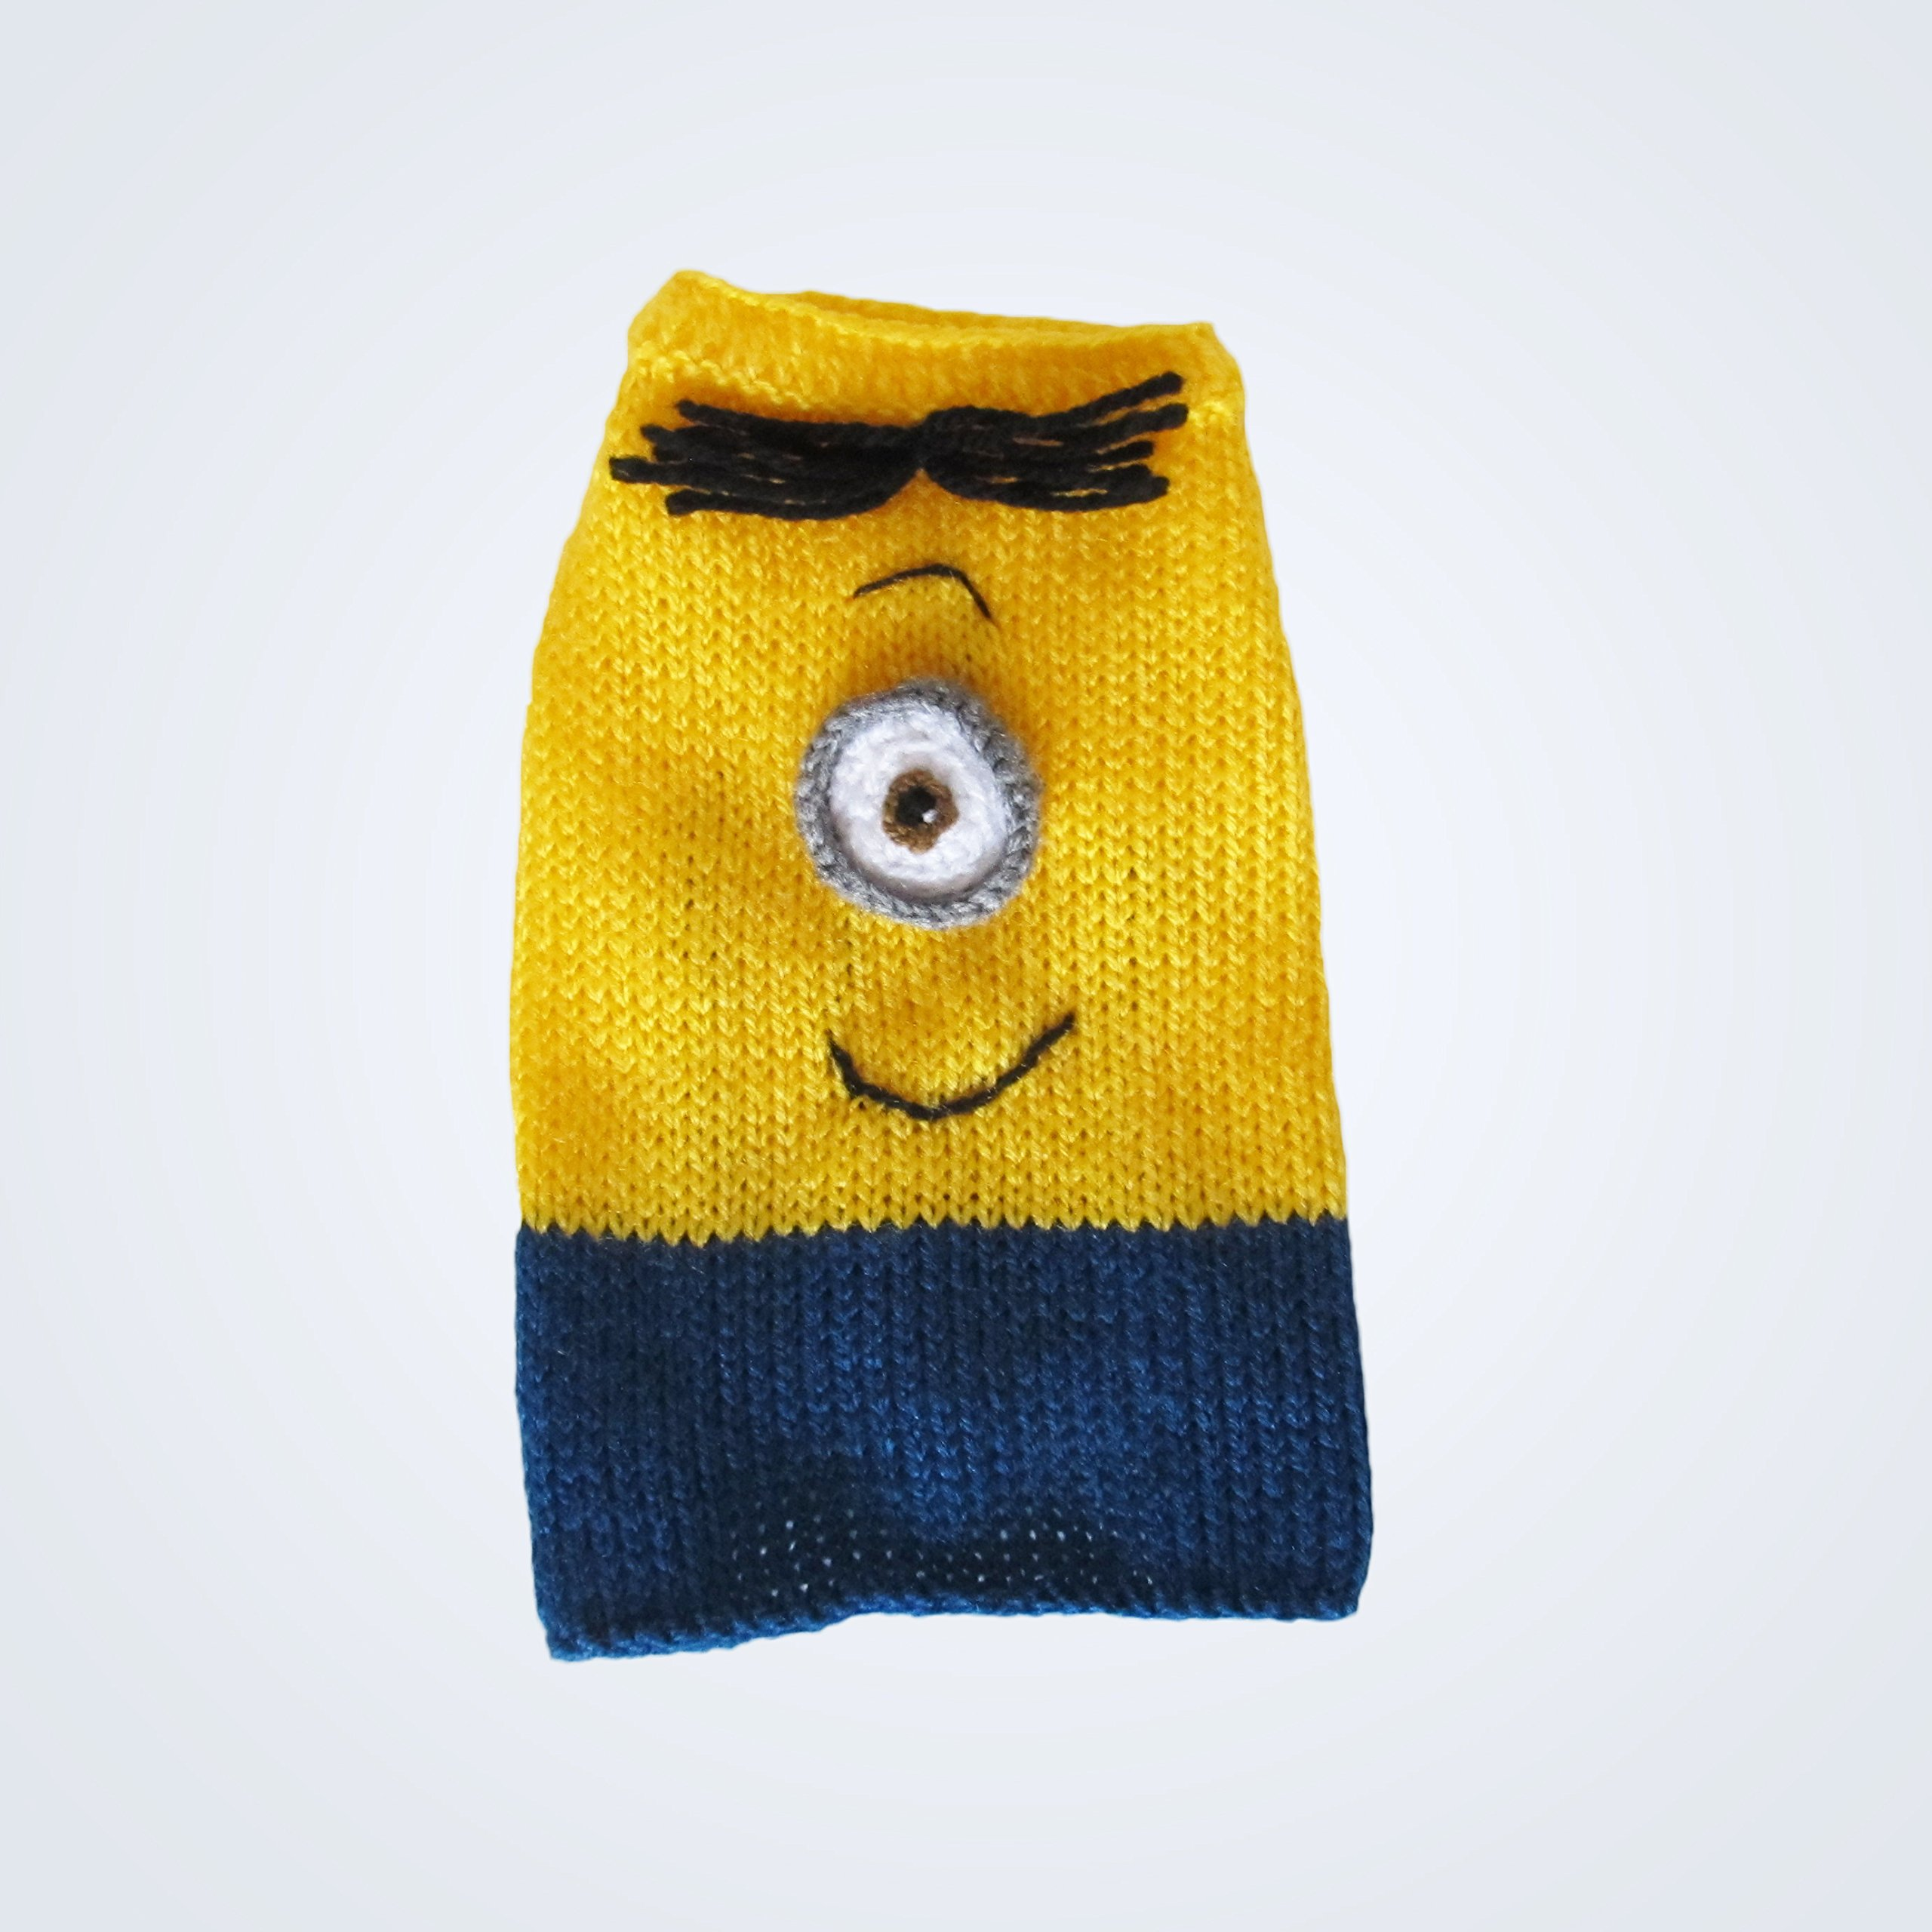 Minion Dog Costume XXXS Dog Sweater Puppy Costume XXX Small Dog Outfits Teacup dog Clothes for Pets Chihuahua Yorkie Toy Dogs - Different Sizes Available (XXXS)